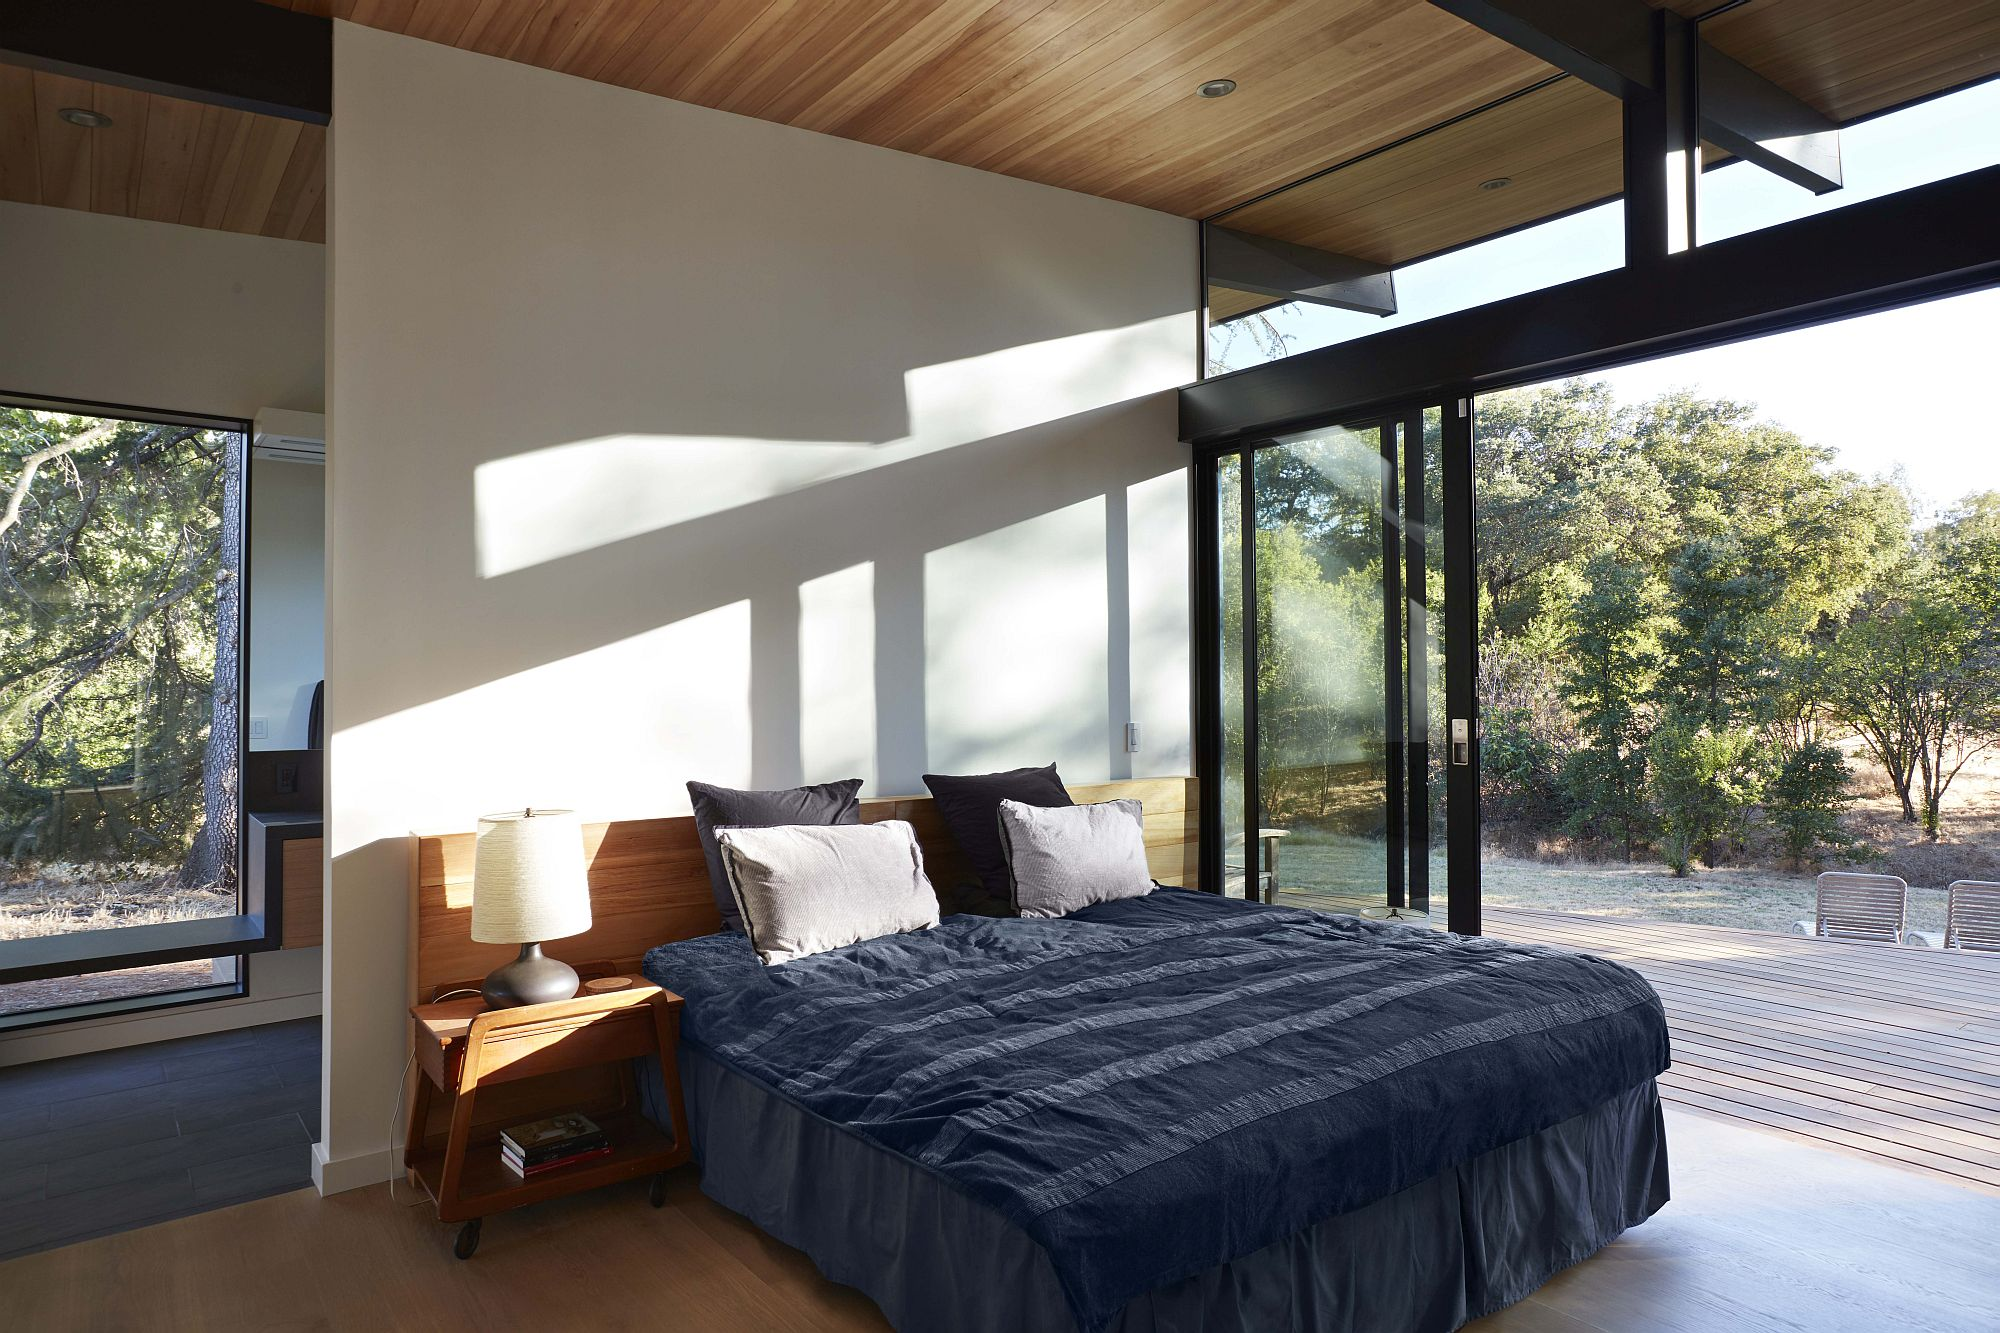 Stackable-glass-doors-open-up-the-bedroom-completely-to-the-scenery-outside